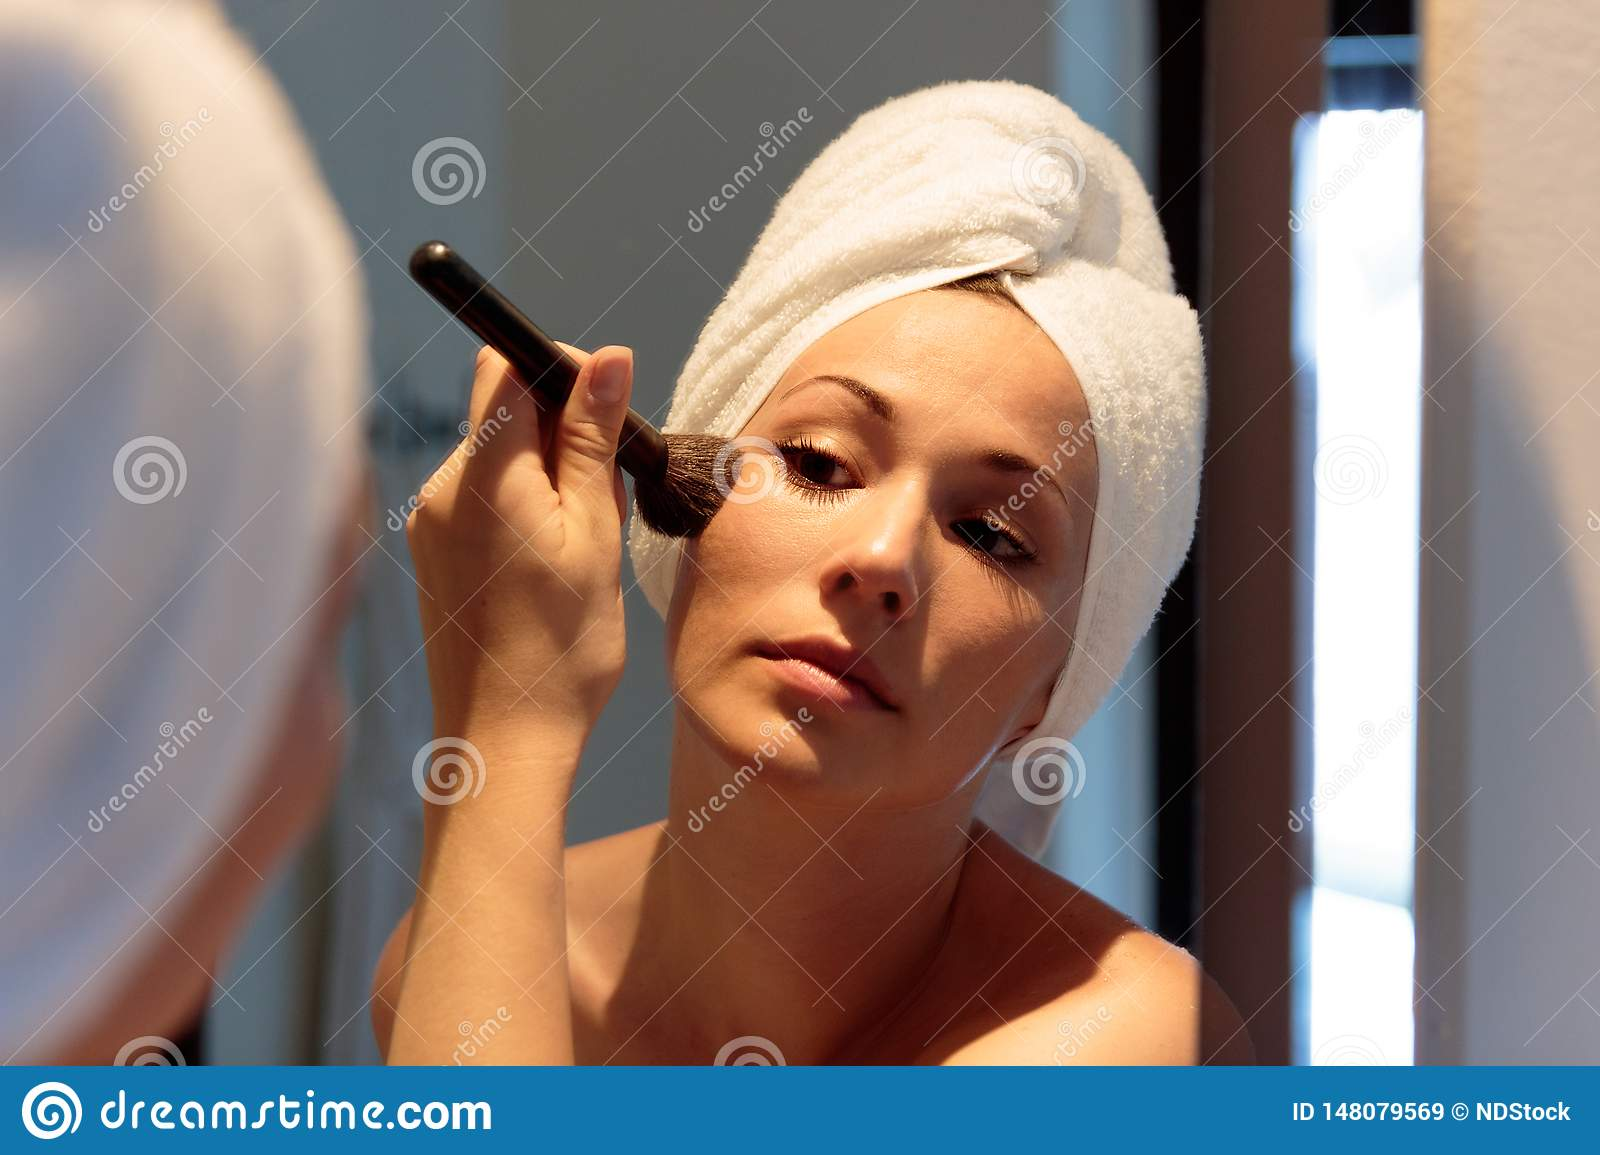 Woman in front of the mirror who is putting on make-up before going out at night